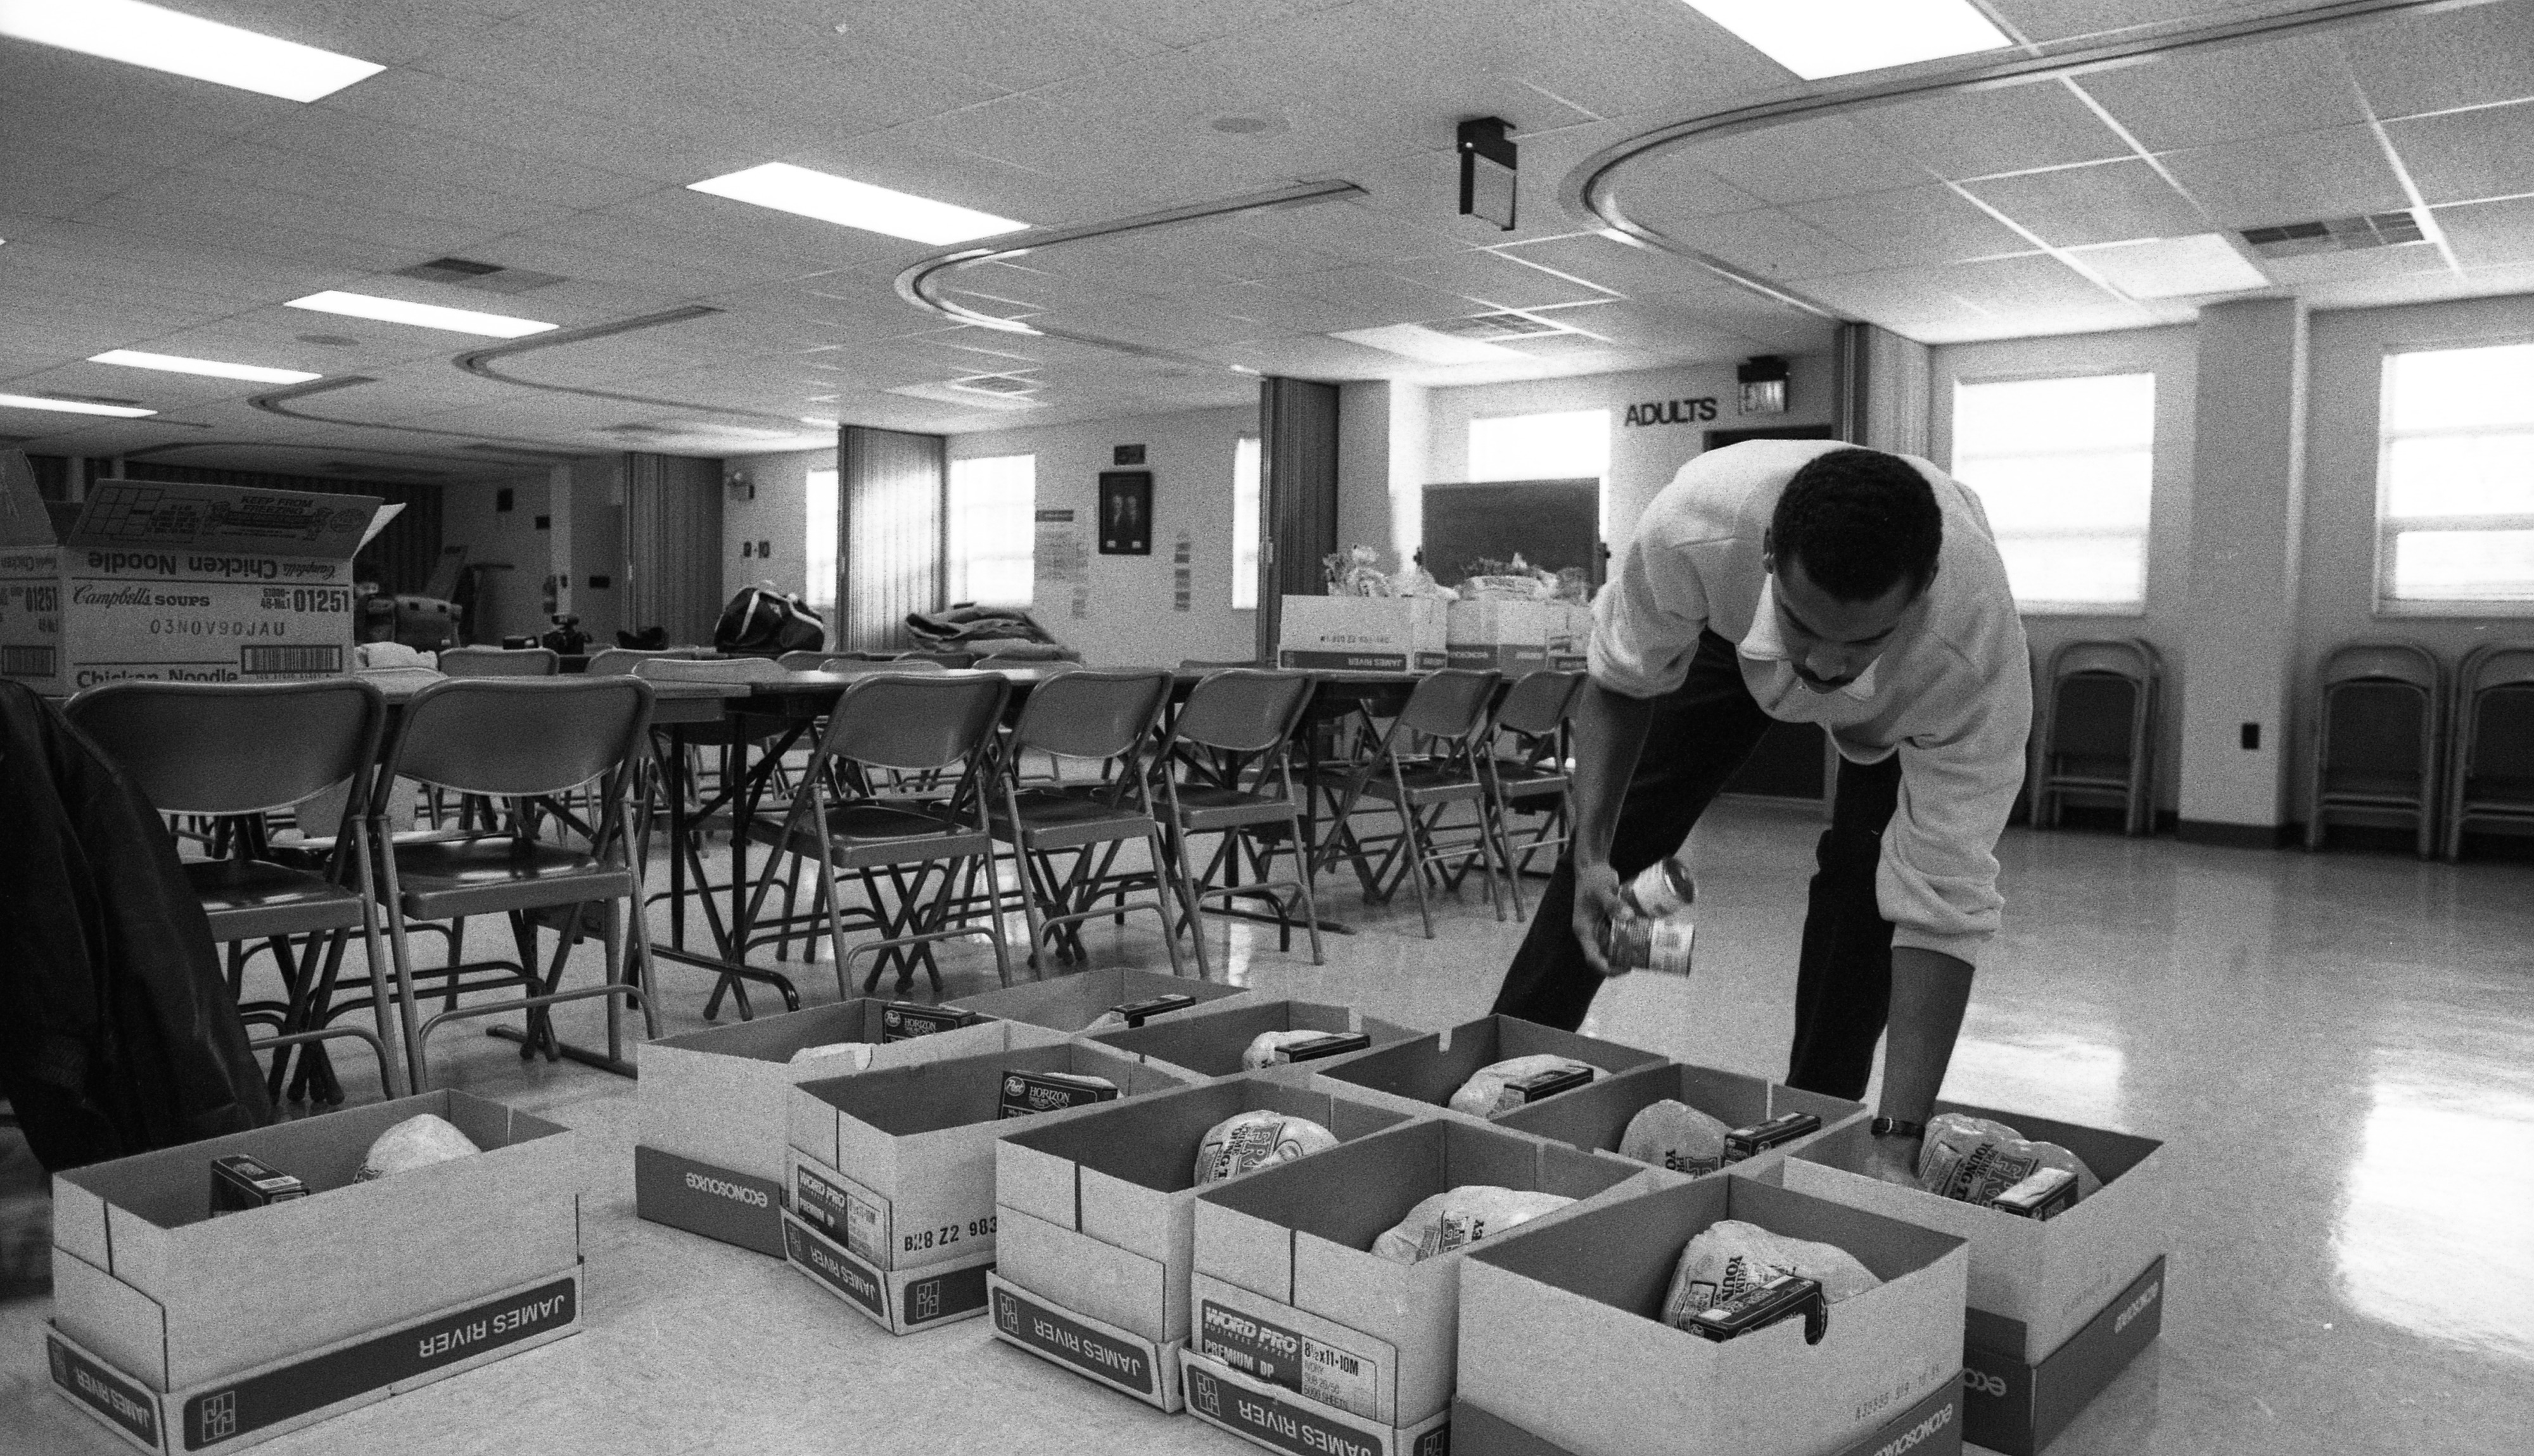 Alpha Phi Alpha Stacking Christmas Food Baskets for the Needy at Second Baptist Church, December 1988 image